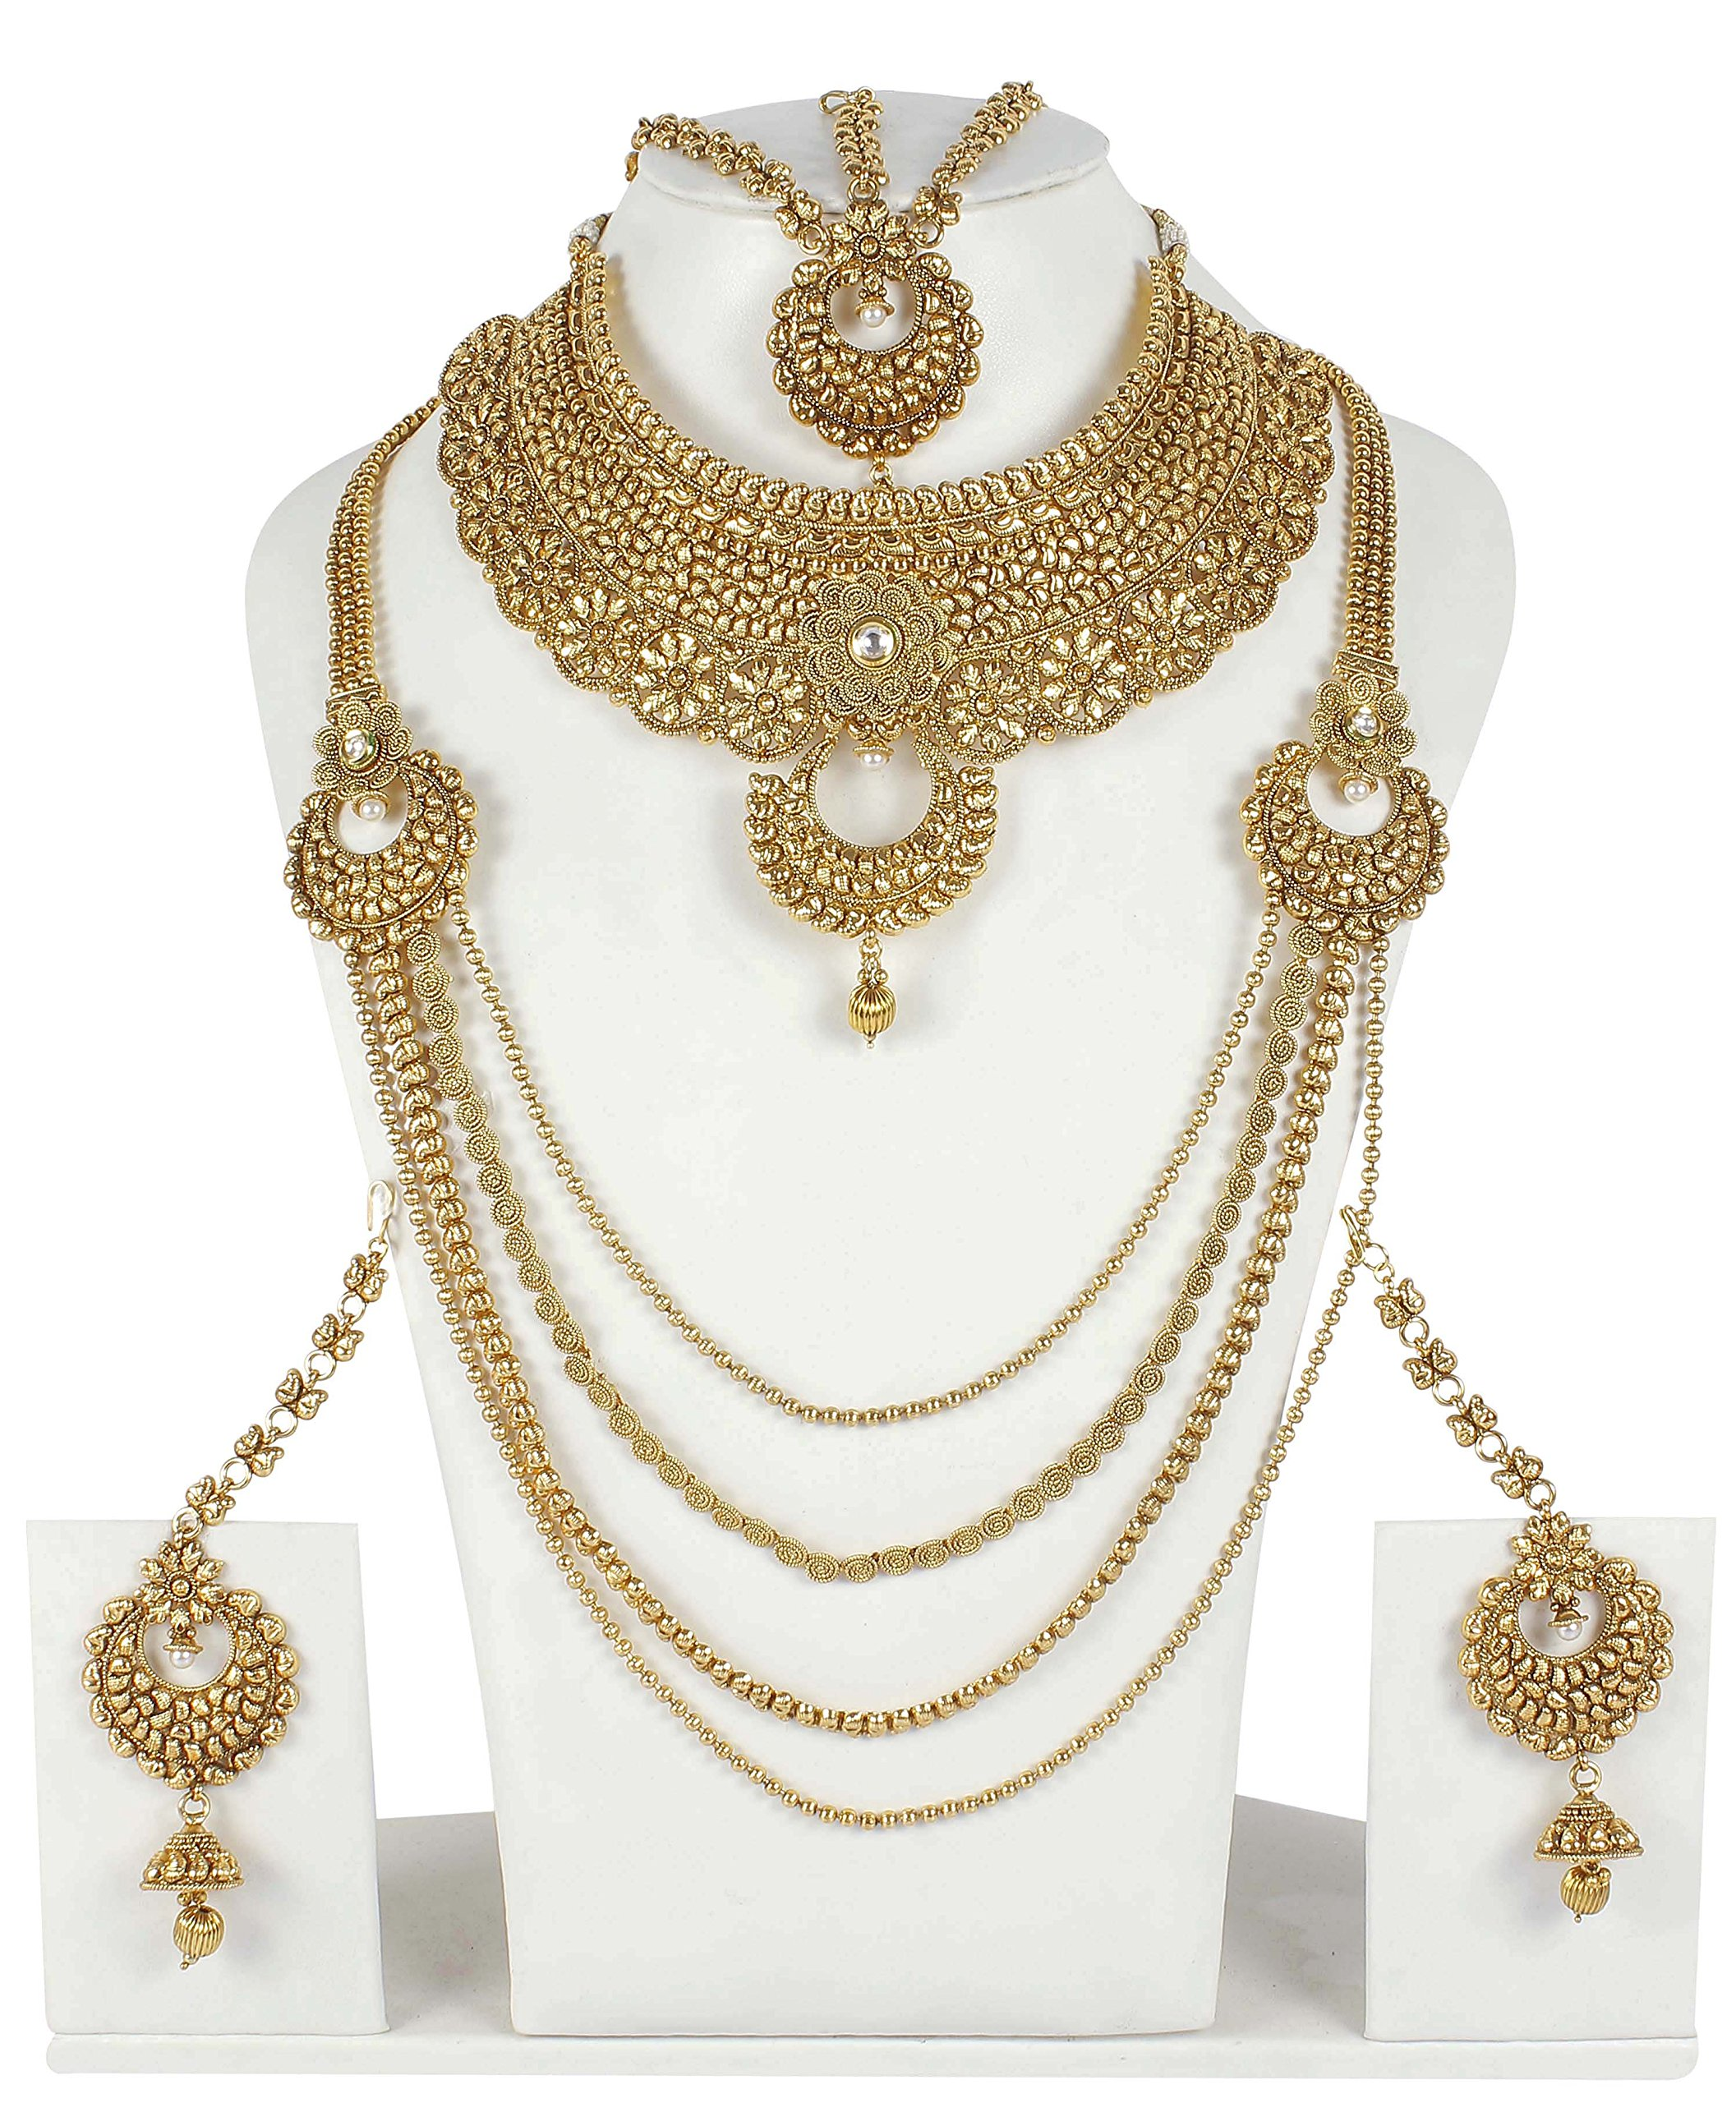 Ethnic Traditional Gold Tone Polki Indian Bridal Necklace Set Wedding Wear Jewelry